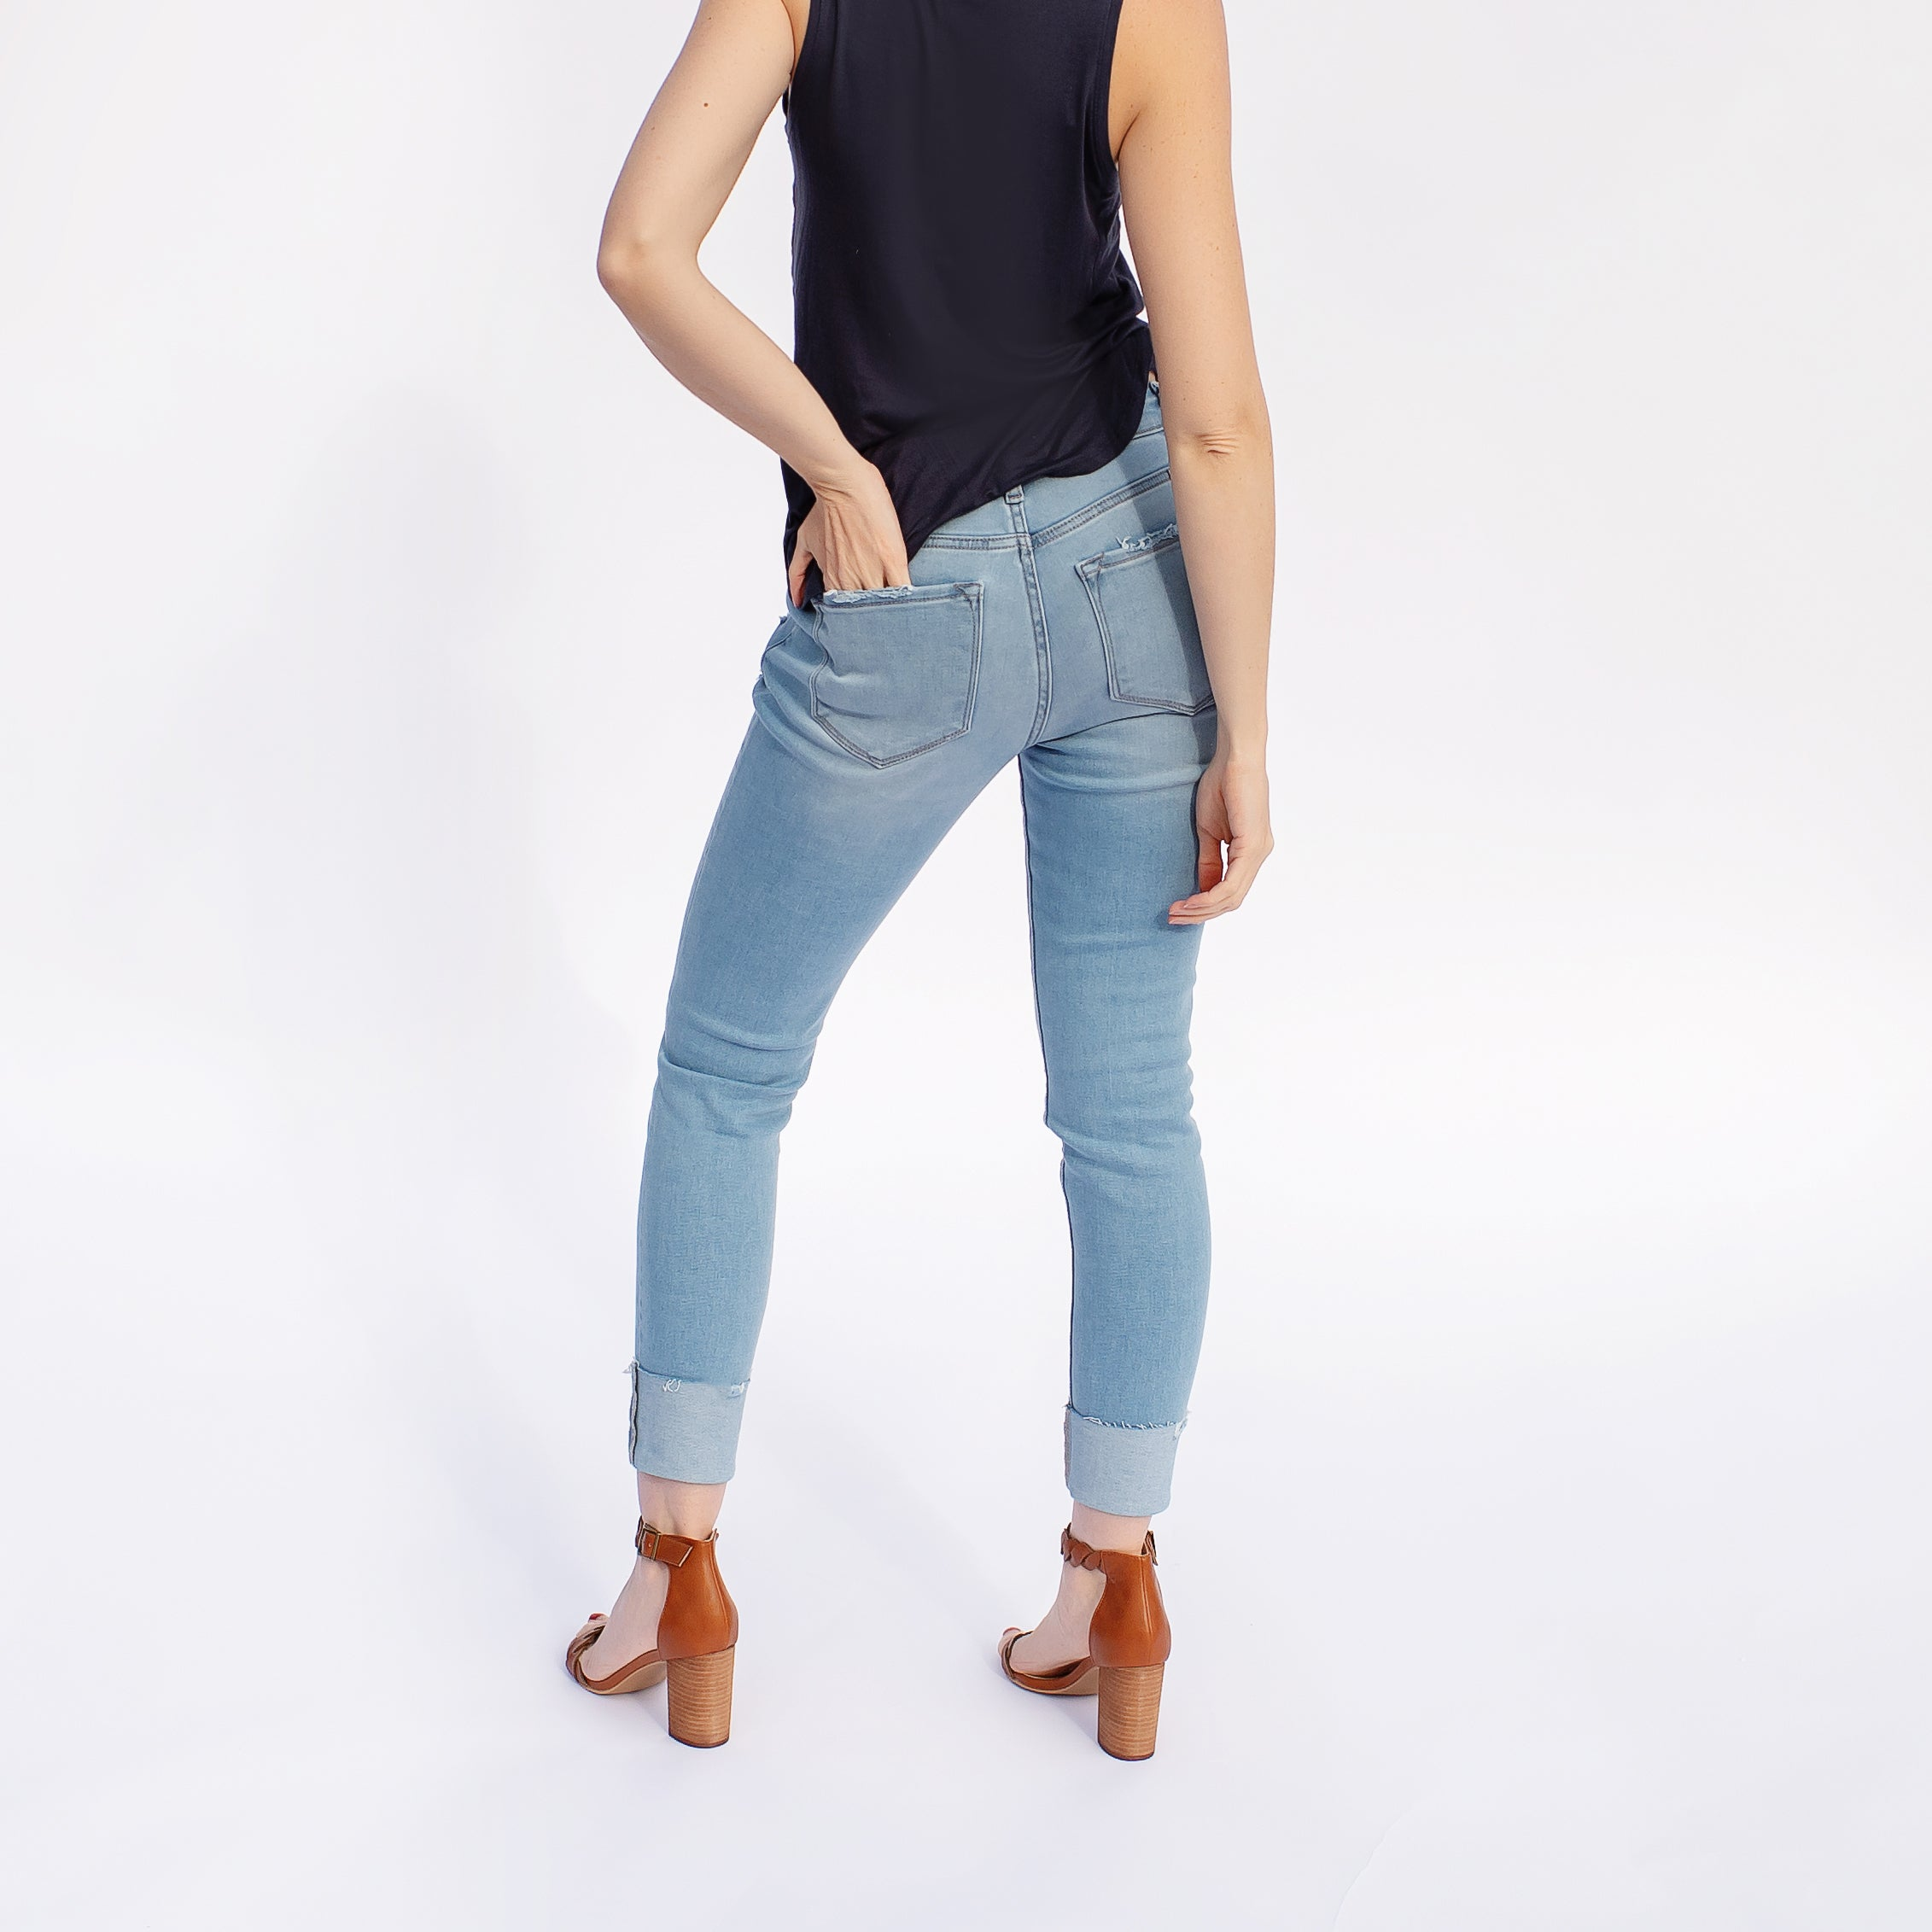 Kancan Gemma High Rise Cuffed Ankle Skinny Jeans